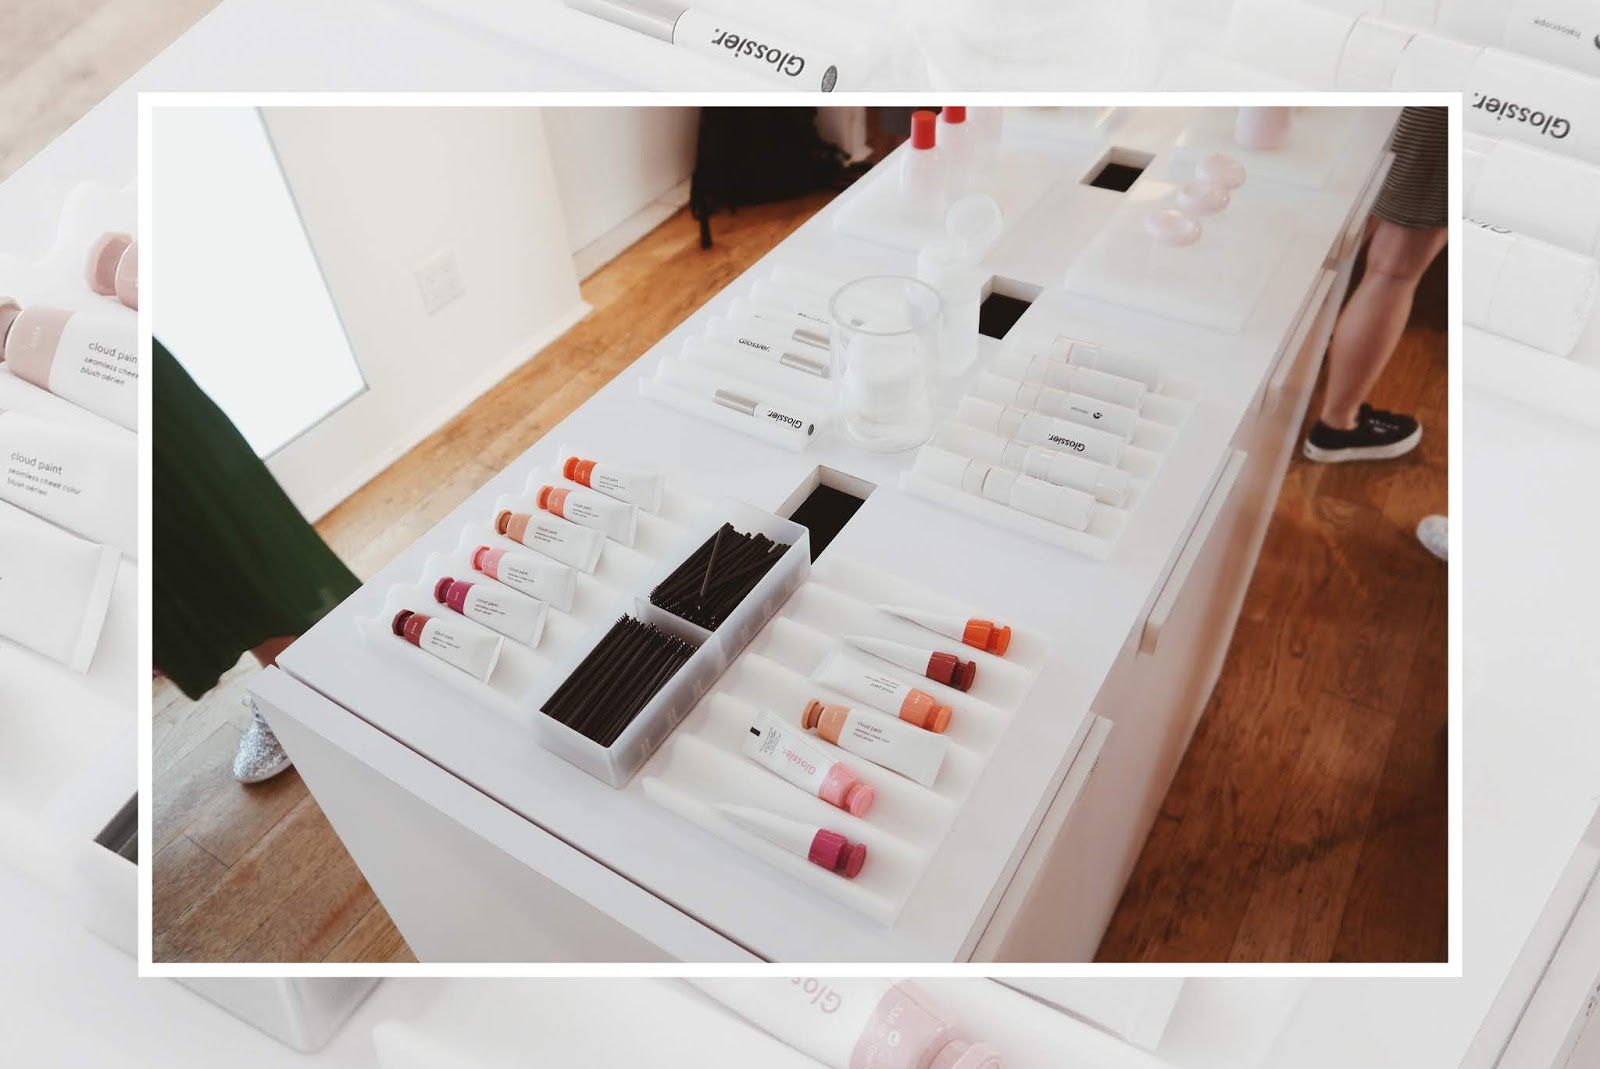 glossier showroom new york nyc noirette diary 7